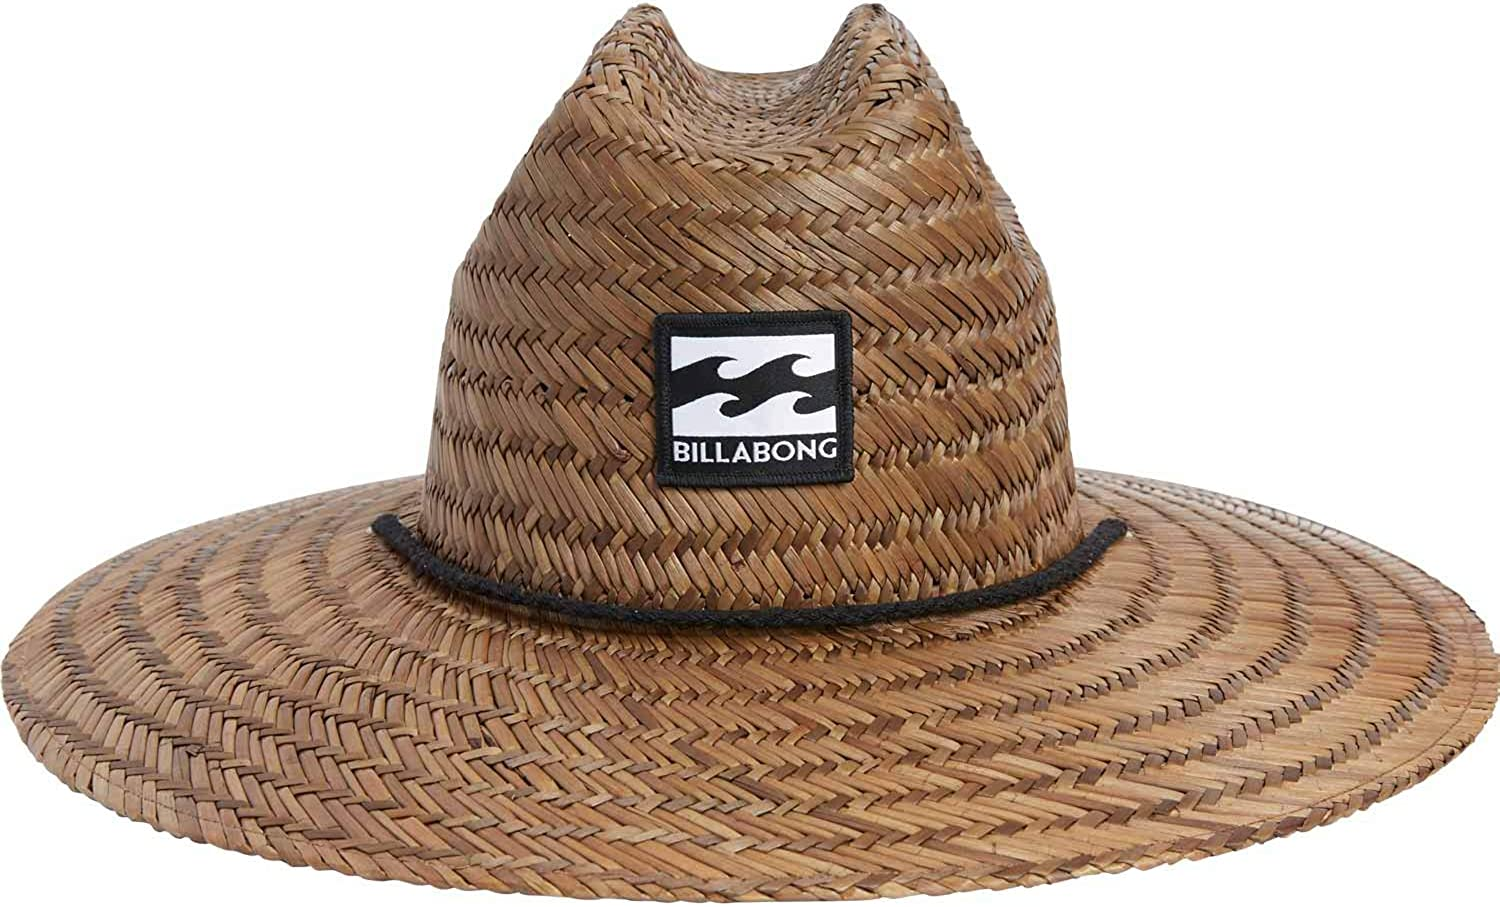 Billabong Men's Tides Hat